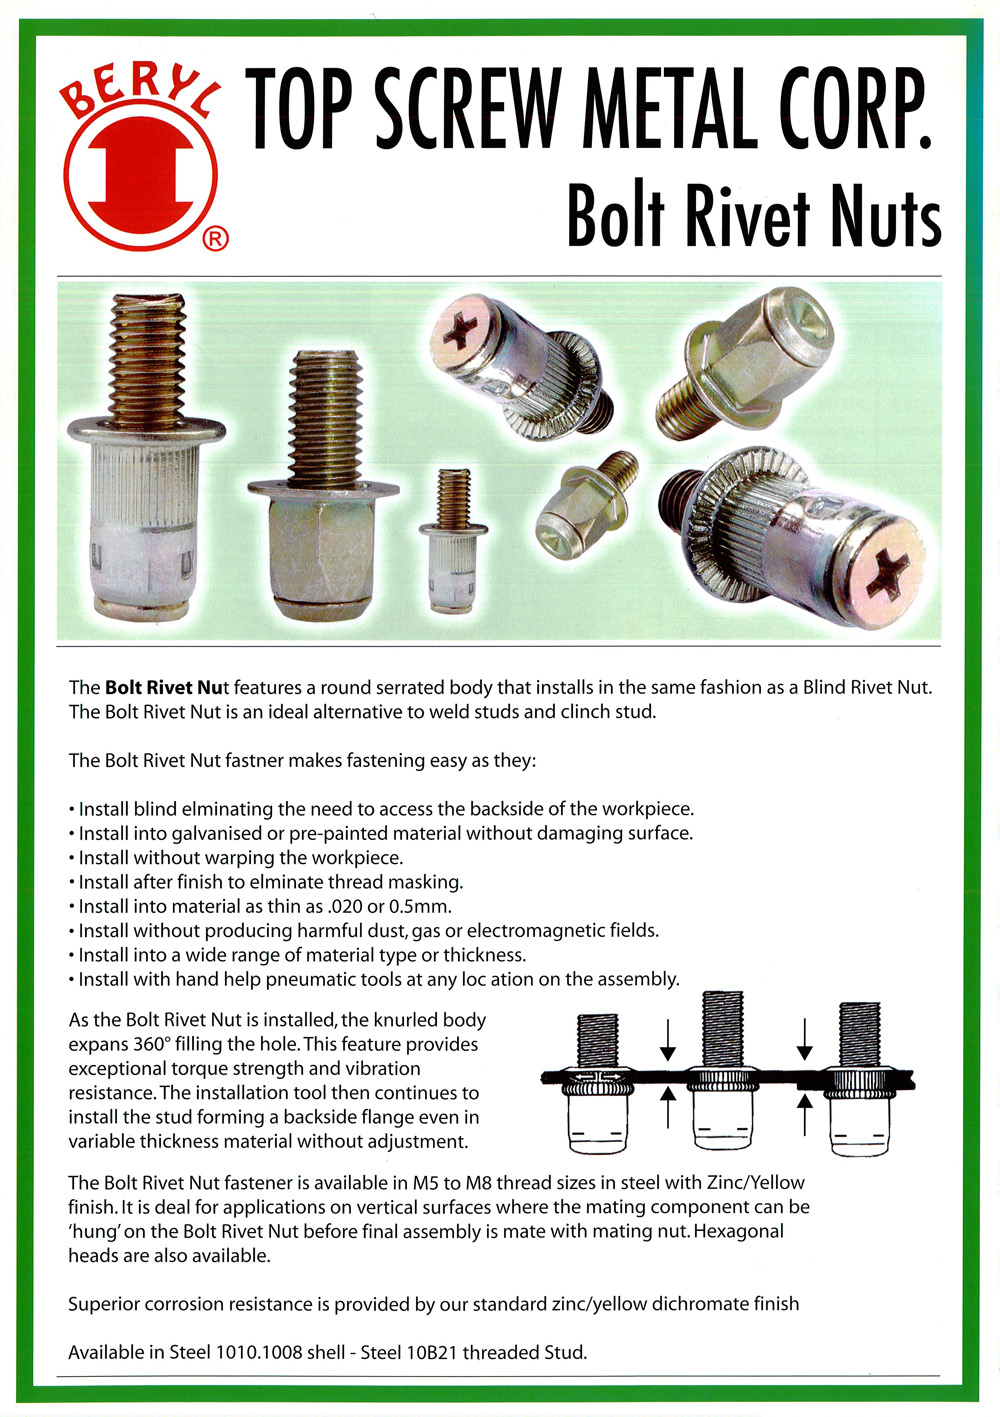 bolt rivet nut,,rivet nut with screw,nut,screw,top screw,bolt screw rivet nut,rivet nut, screw rivet nut, blind rivet nut with screw,steel bolt rivet nut,steel screw rivet nut,stainless steel bolt rivet nut,stainless steel screw rivet nut,inox bolt rivet nut, inox screw rivet nut,bolt rivet nut manufacturer, screw rivet nut manufacturer,bolt rivet nut producer, screw rivet nut producer,fasteners,metal forging,rivet nut manufactory,manufacture